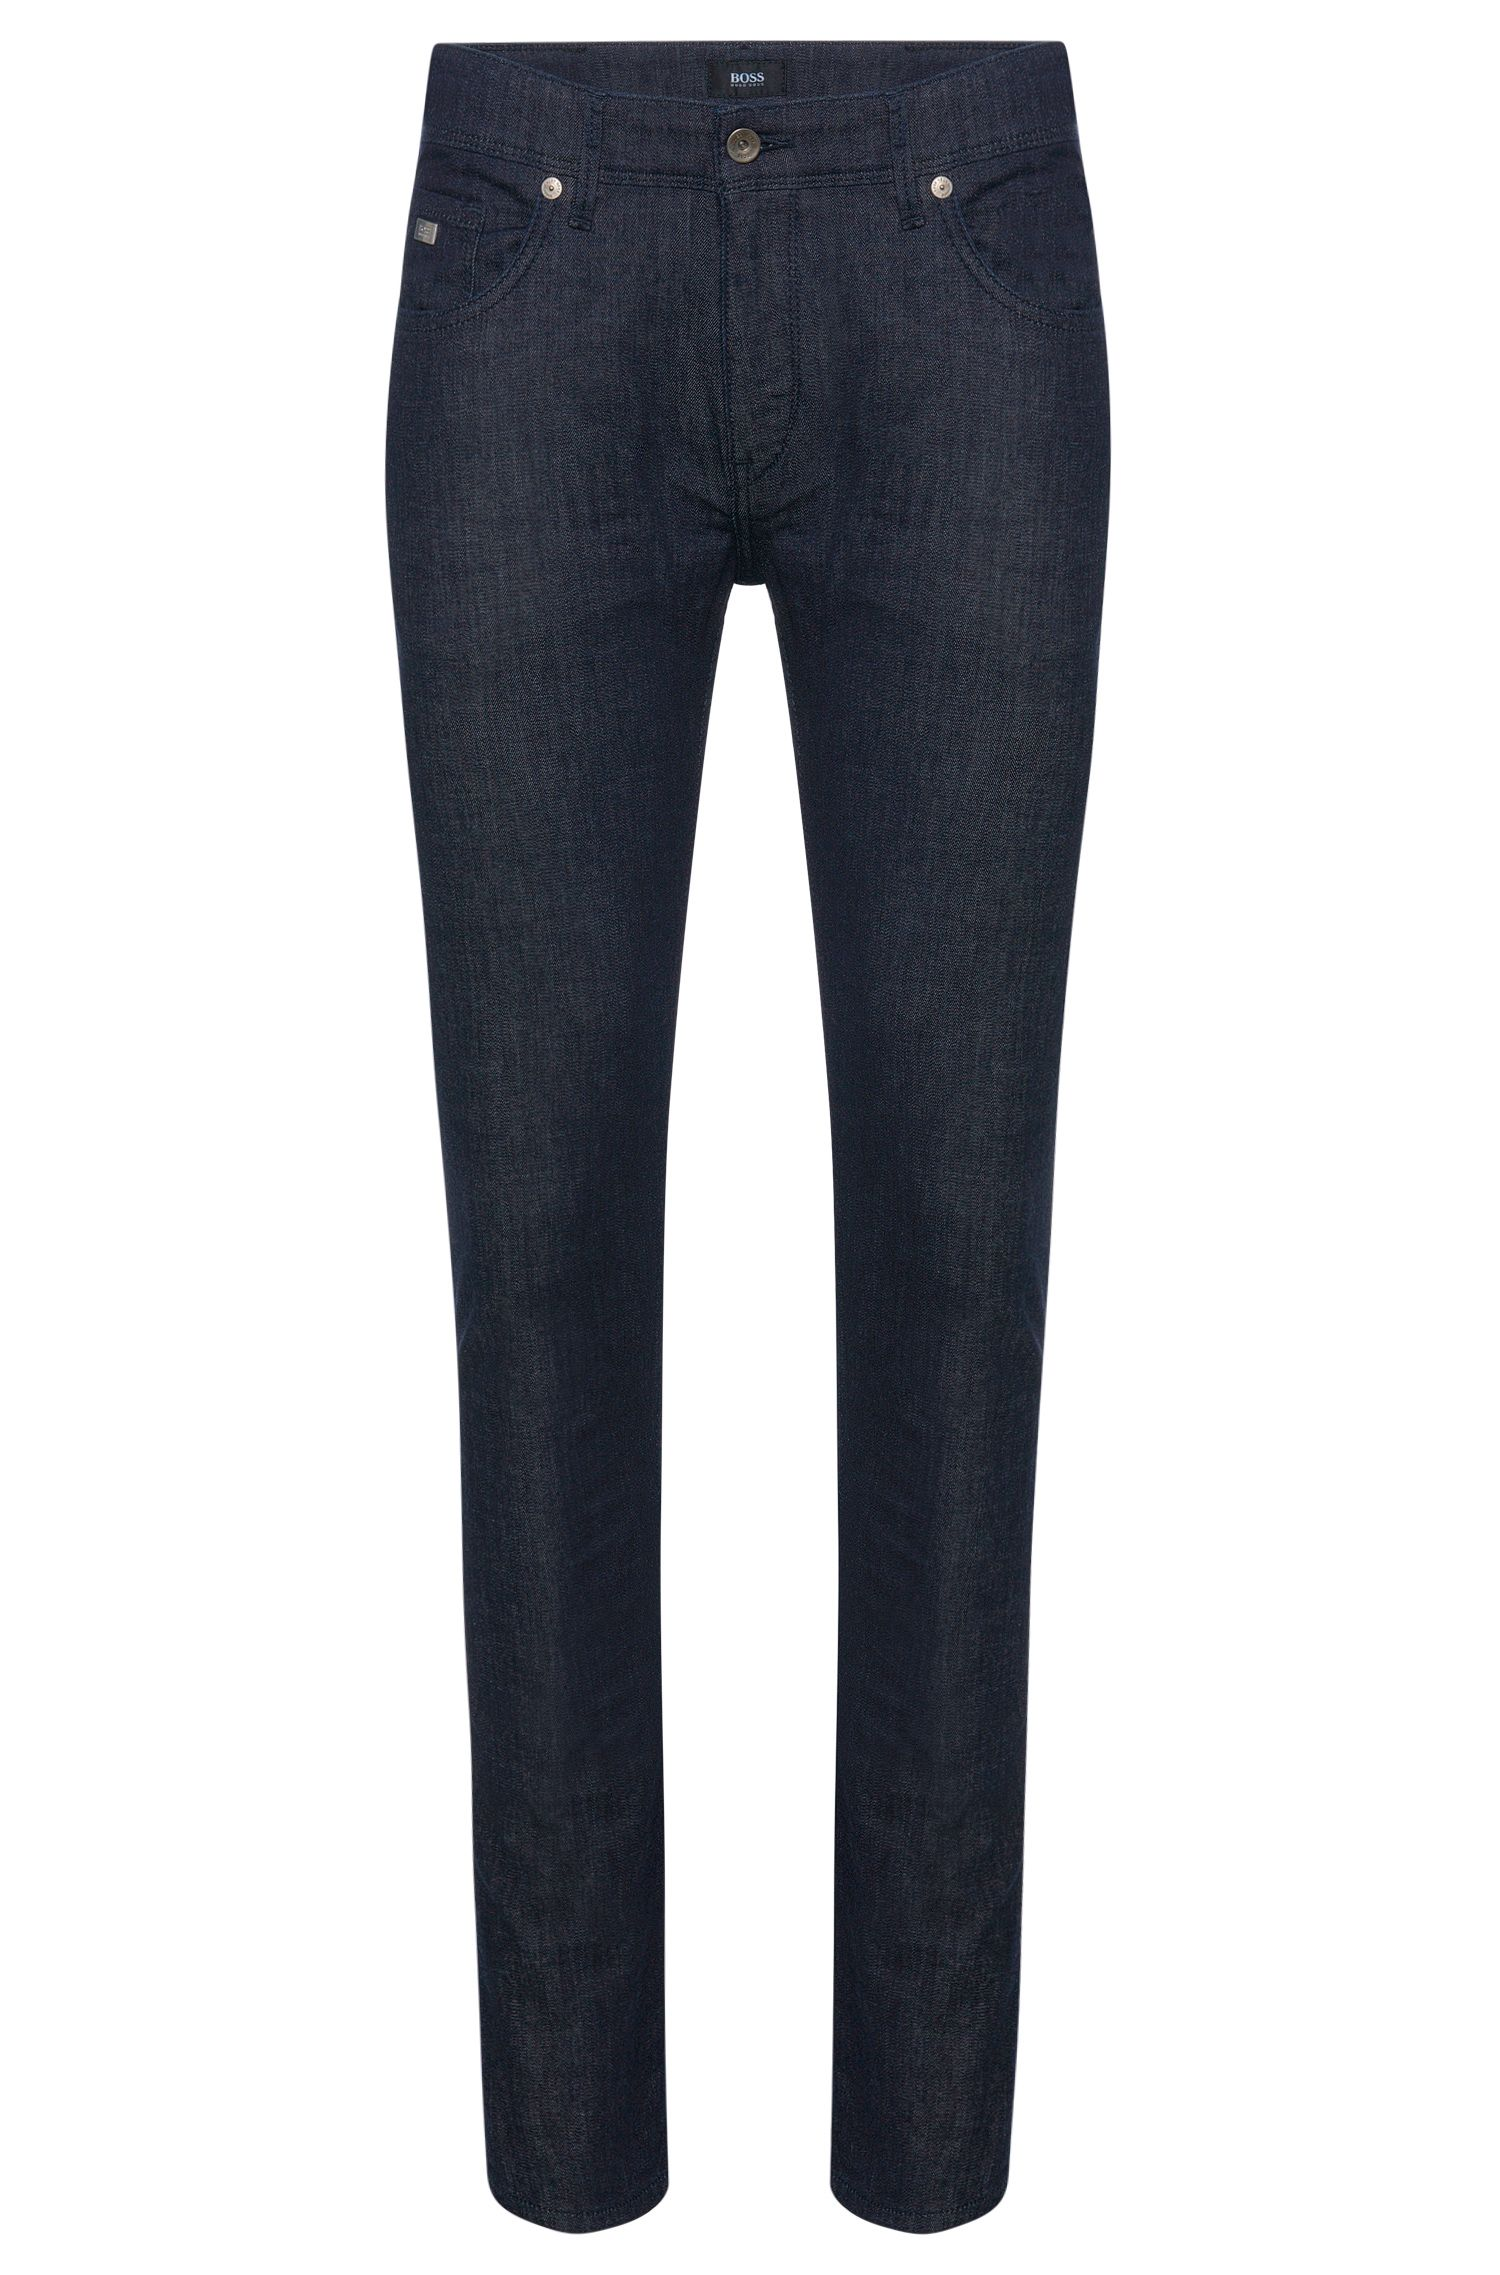 'Charleston' | Extra Slim Fit, 8 oz Stretch Cotton Jeans